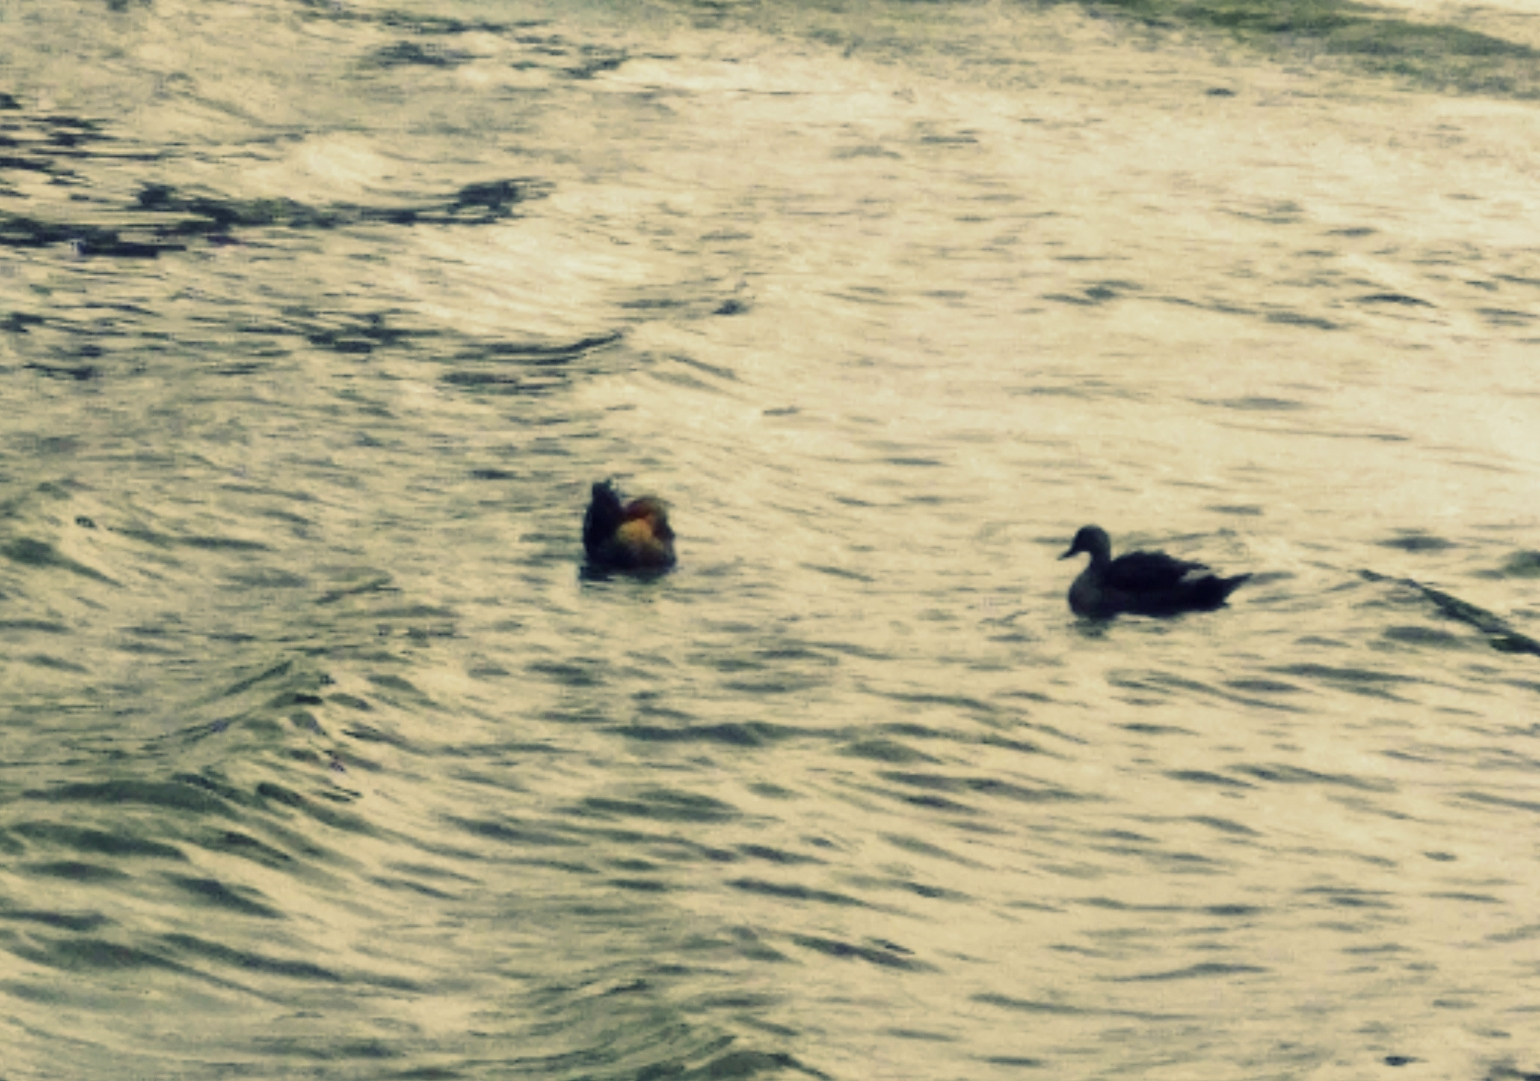 Bird - Birds in Water - A picture of ducks in water